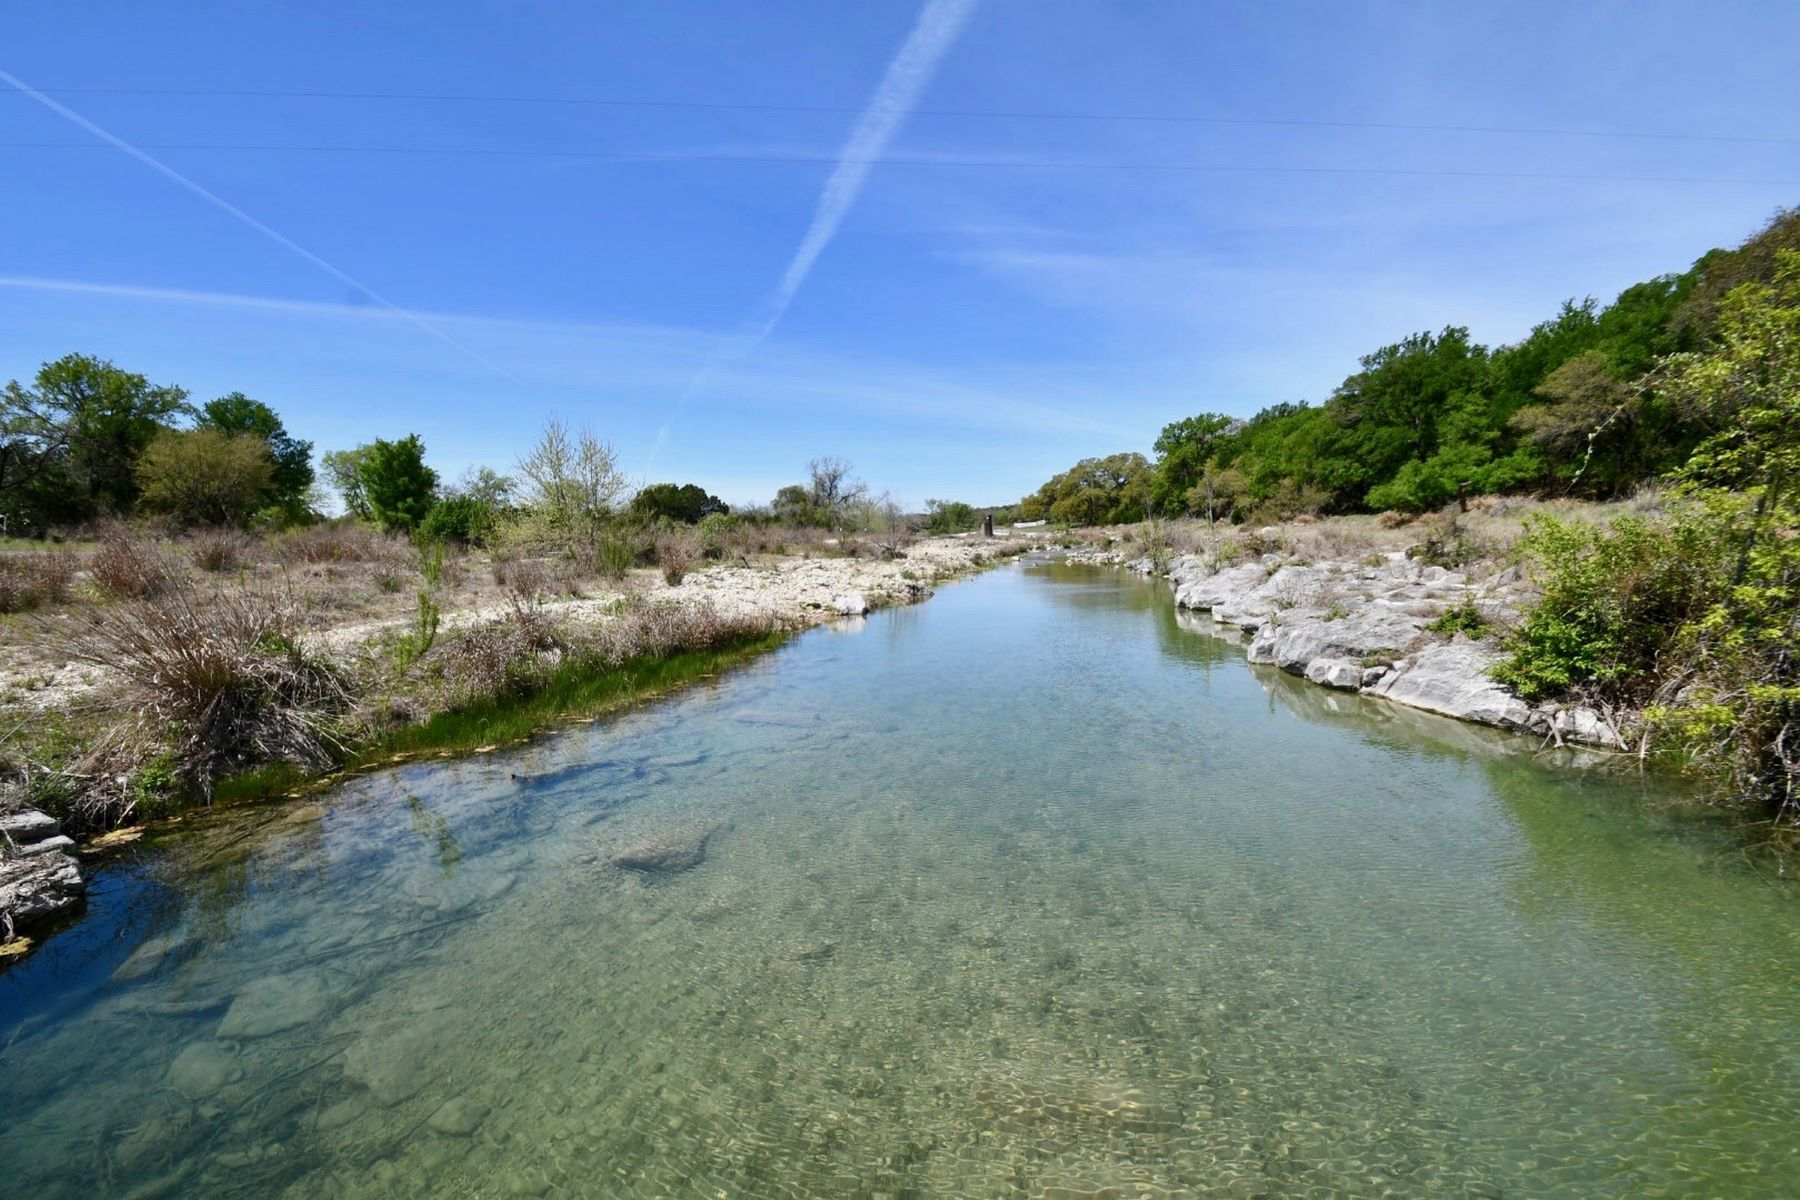 Property for Sale at 60± Ac. LITTLE JOSHUA CREEK RANCH 60+/- Acres - Kendall County Boerne, Texas 78006 United States